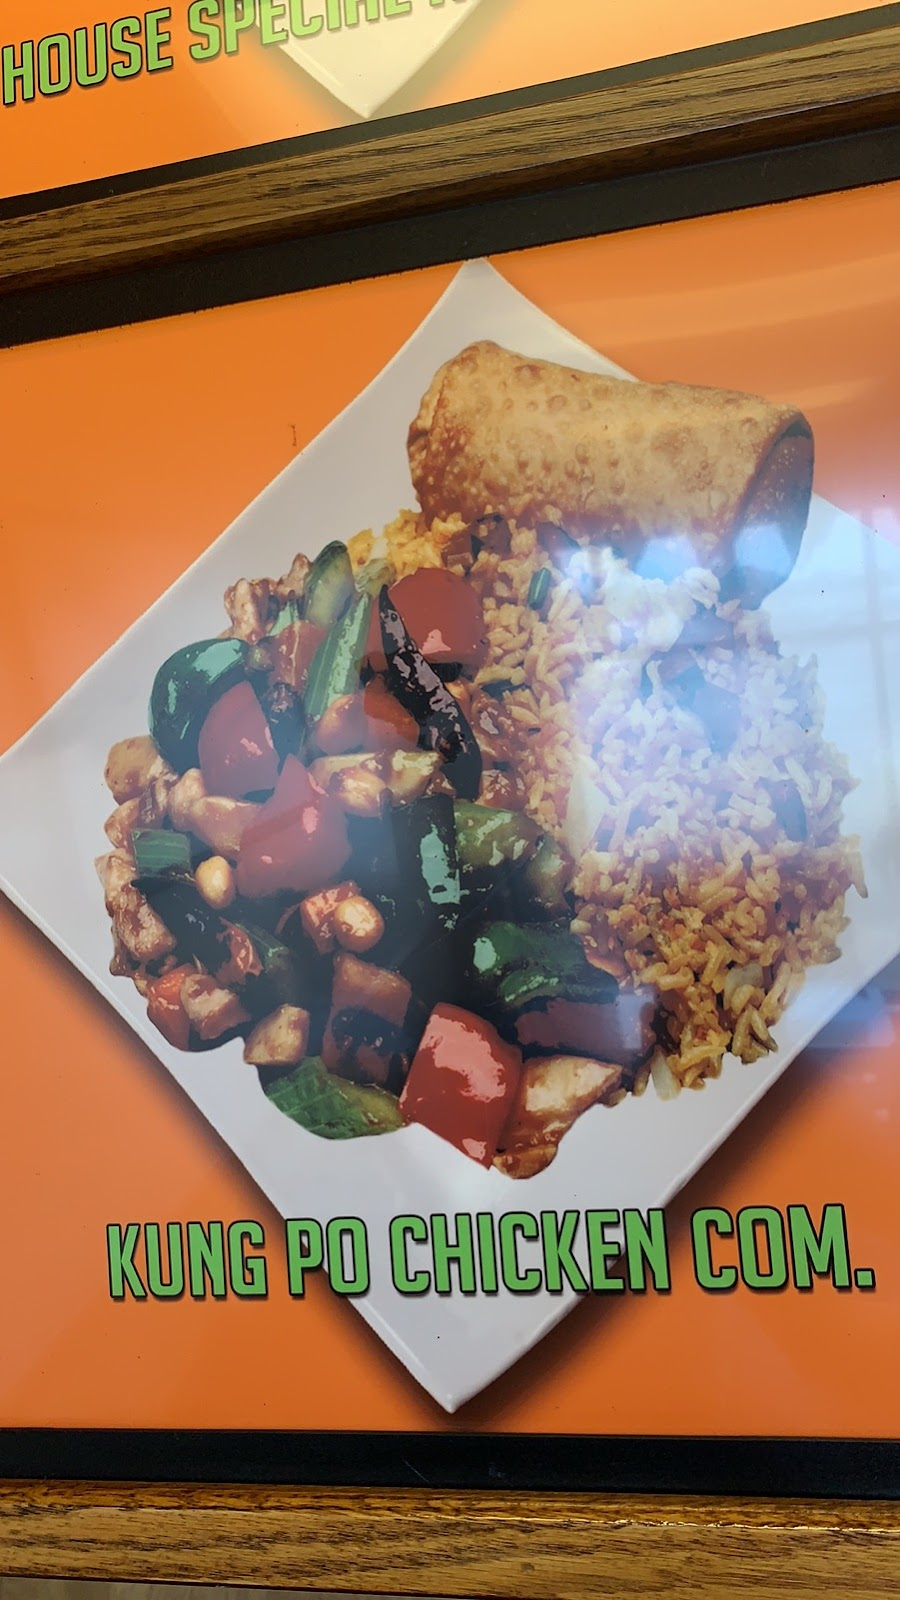 New China   restaurant   645 US Hwy 72 W, Athens, AL 35611, USA   2568019388 OR +1 256-801-9388